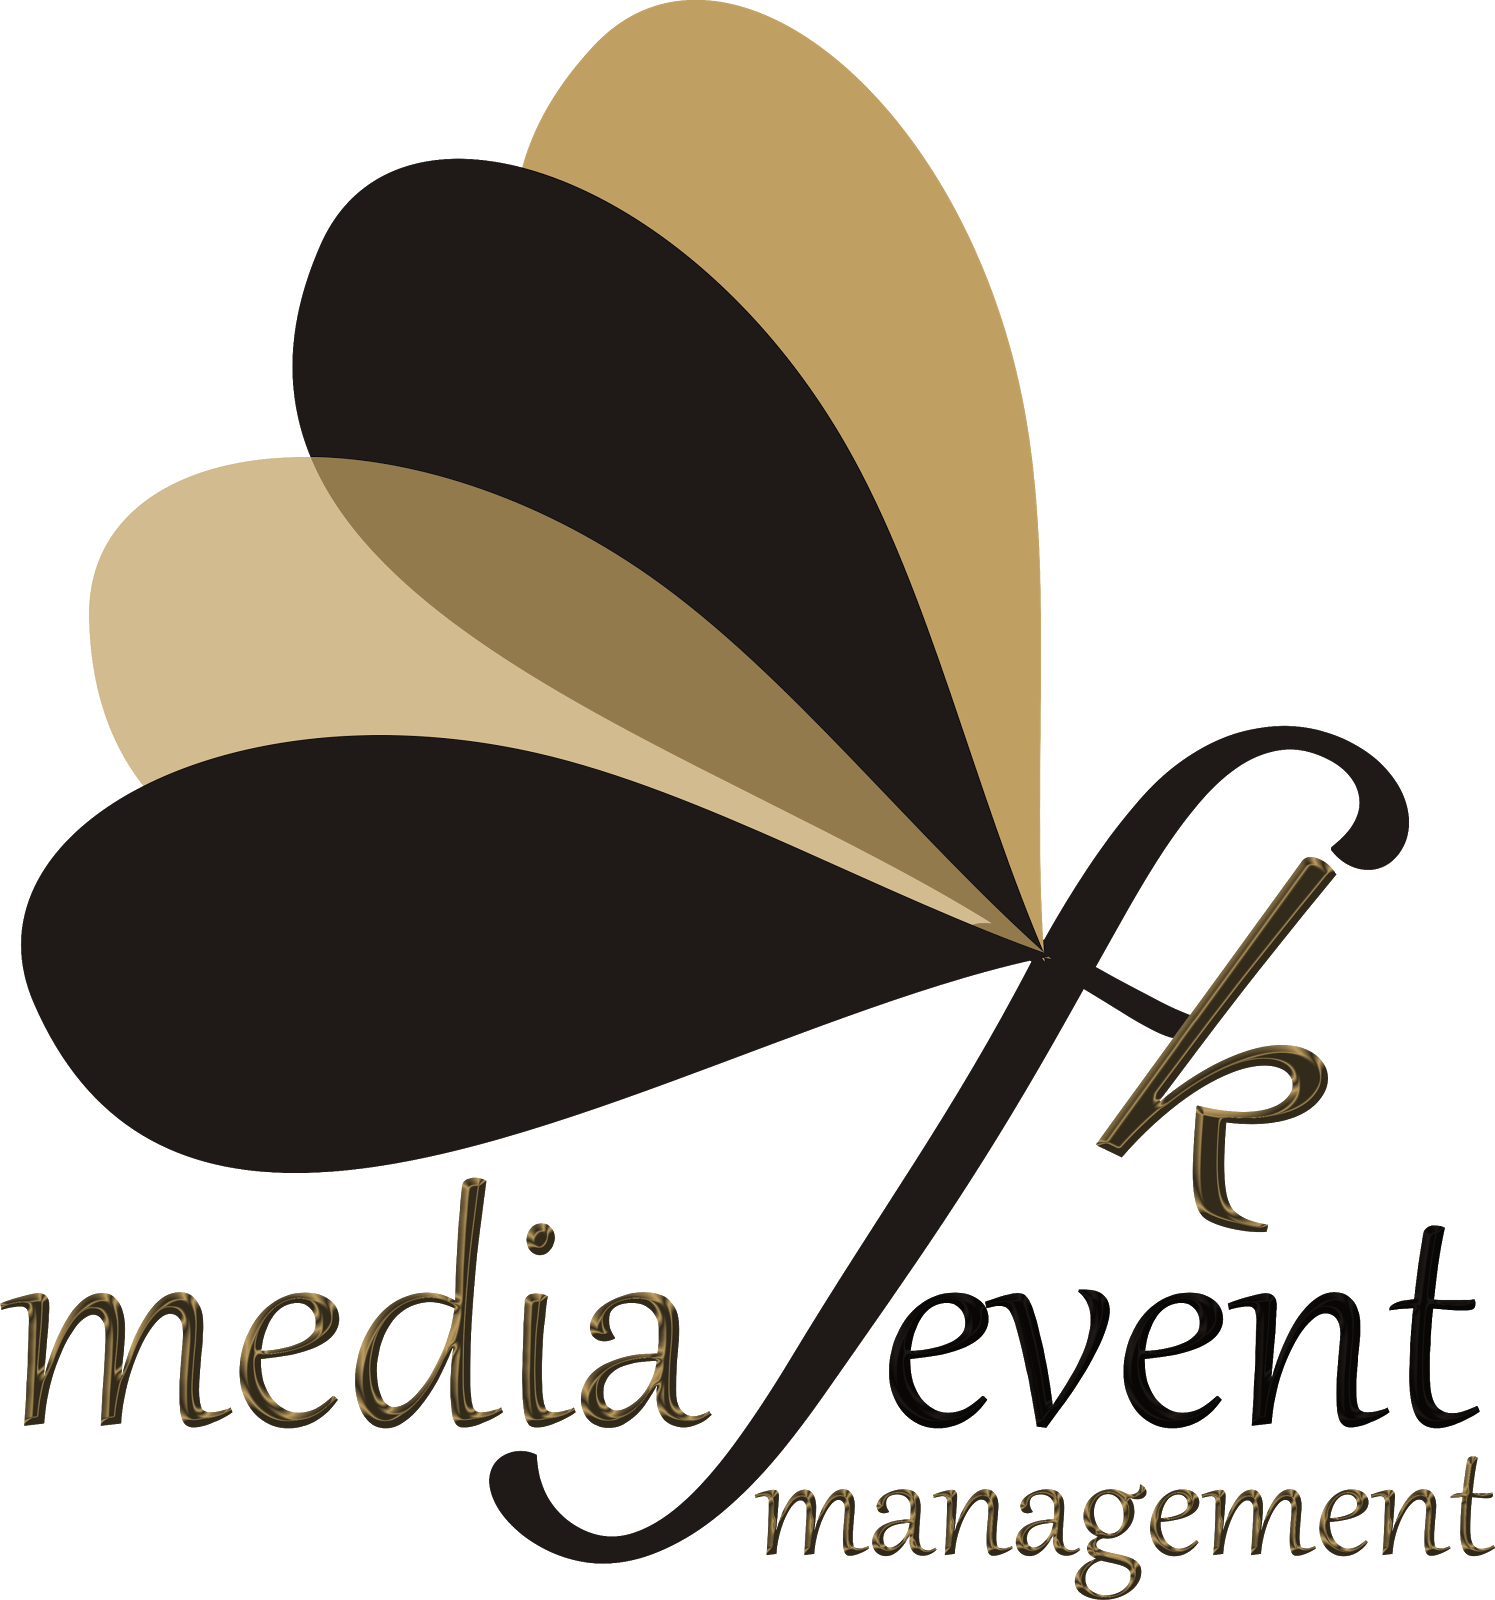 Total Management Leading Event Travel and Lifestyle Agency